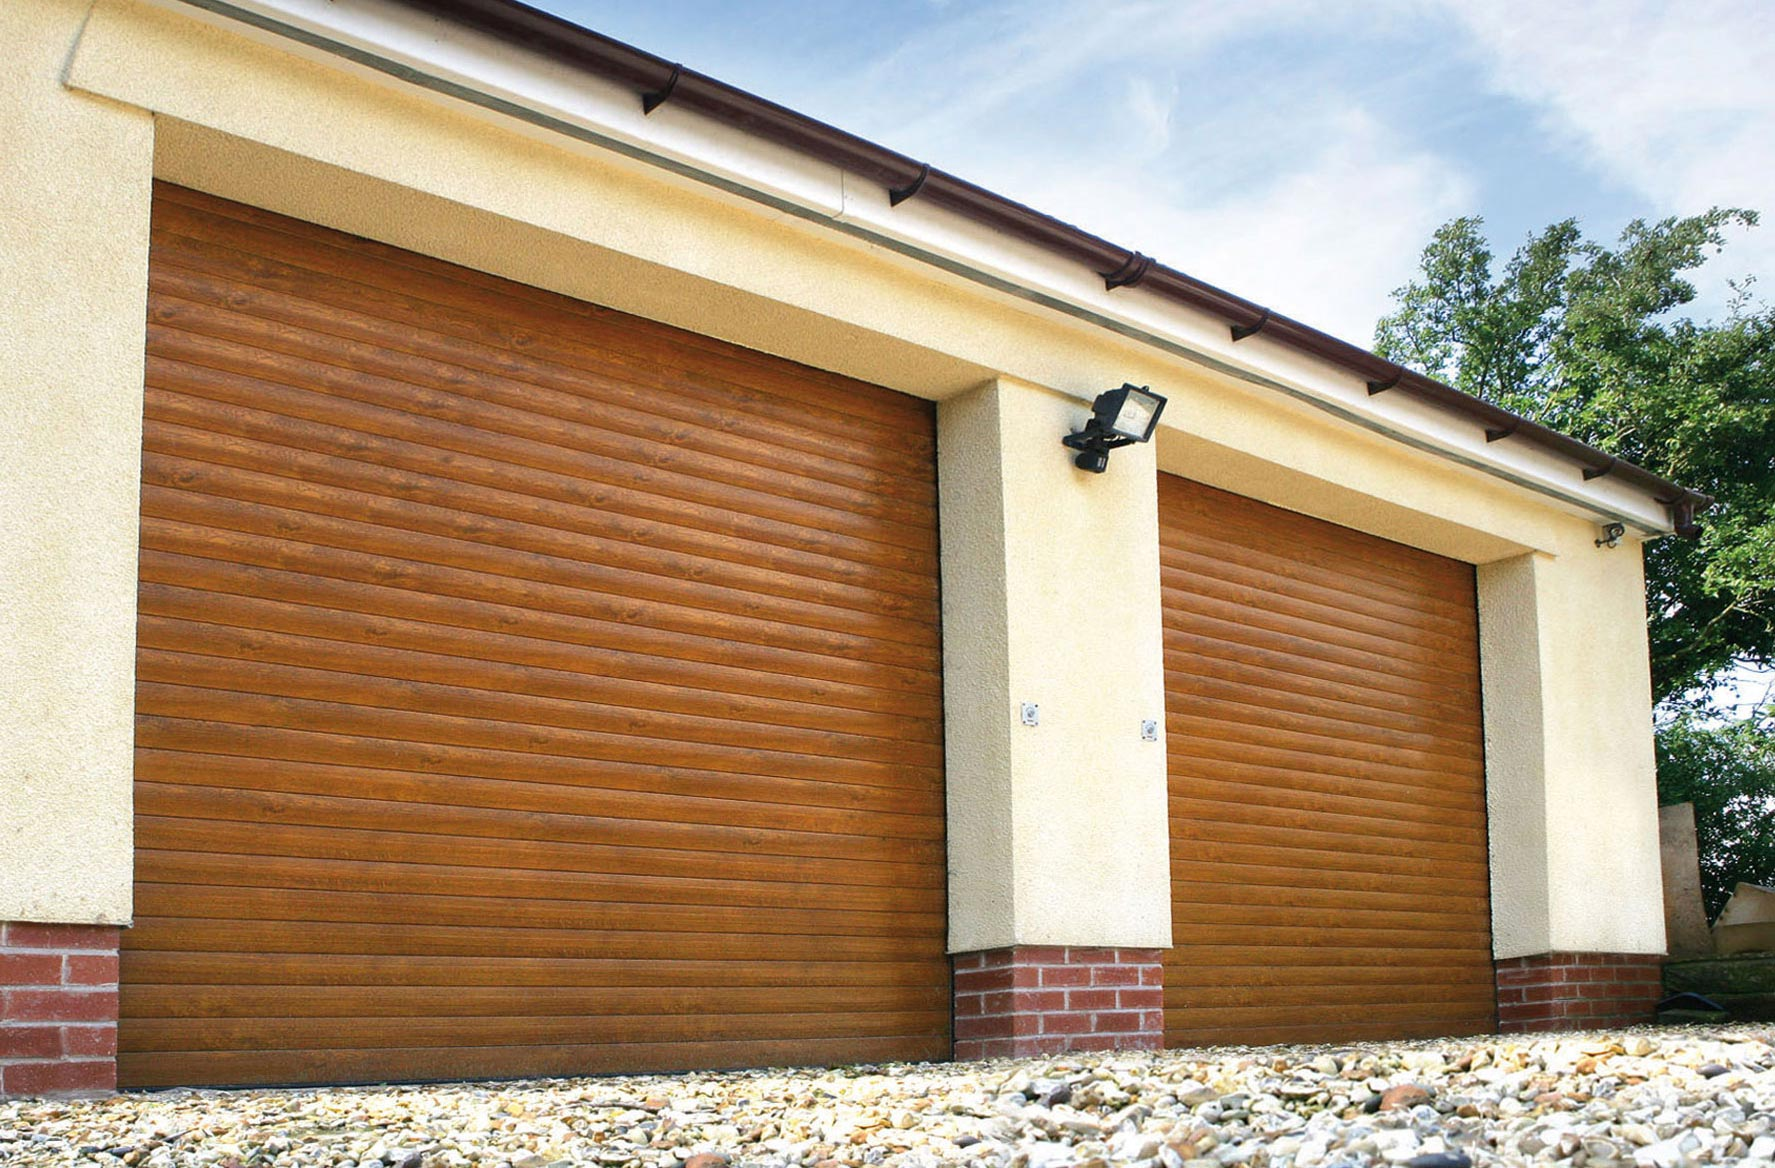 1168 #7B4921 We Are Pleased With The Door And The Workmanship Of Your Engineers It  image Garage Doors Company 35831775